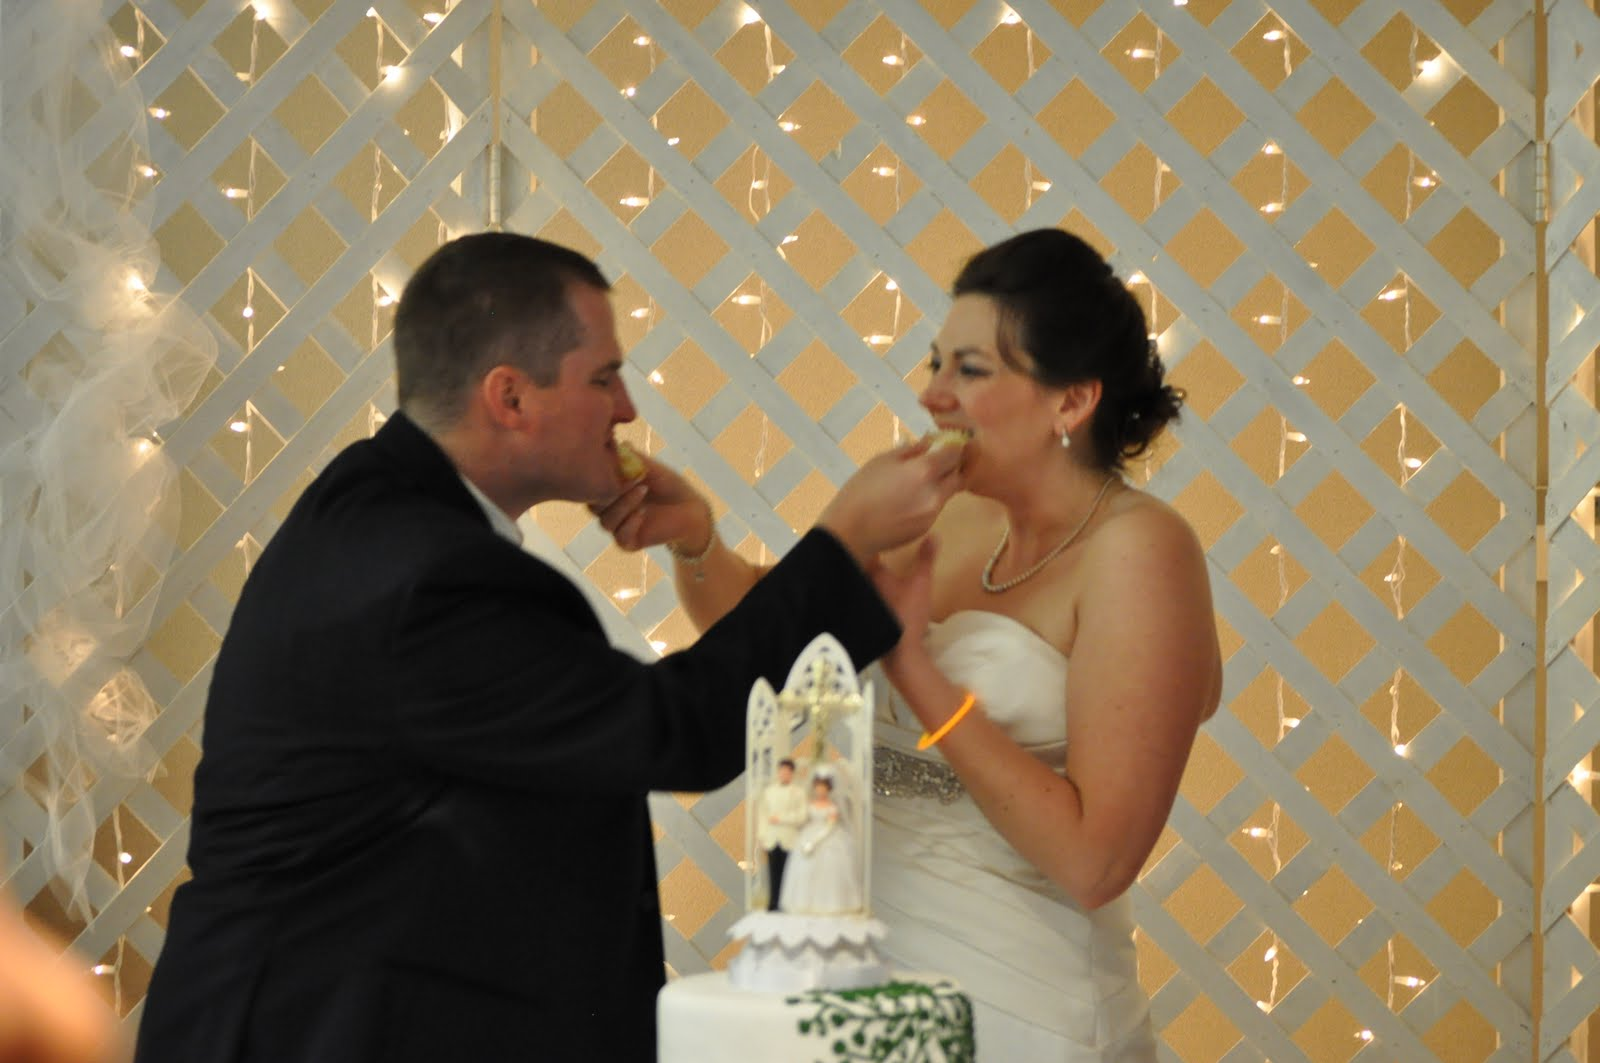 Married: May 29, 2011